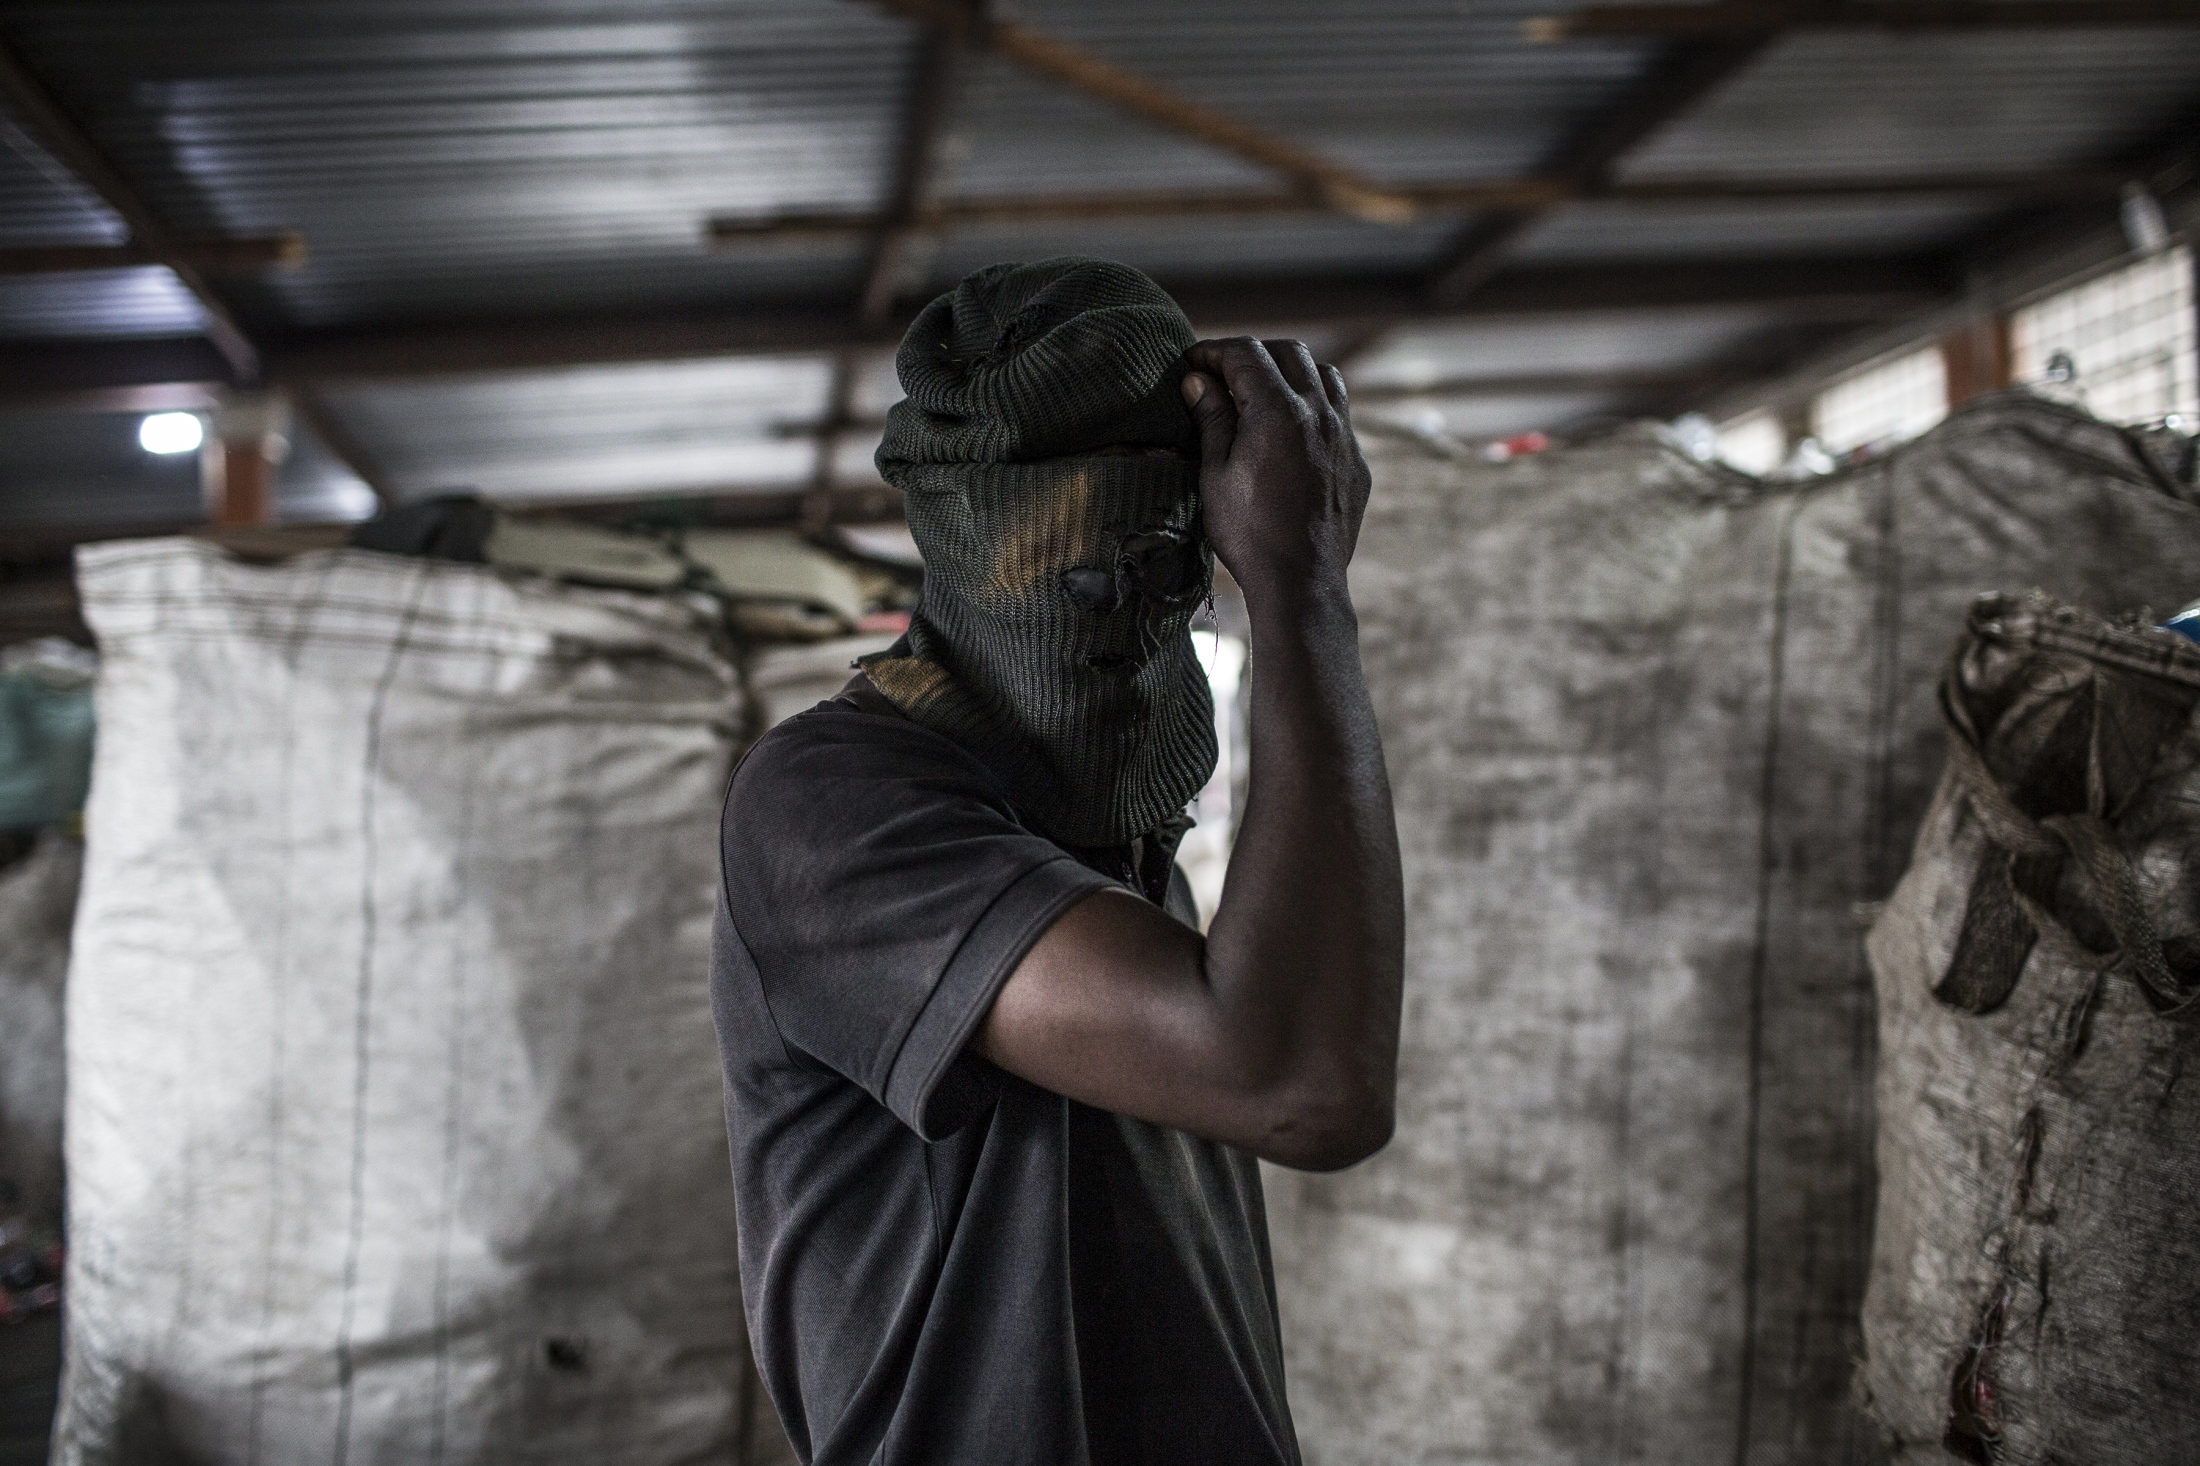 waste picker wears a balaclava at Mudimu Recycling, a buy back centre in Selby, Johannesburg.